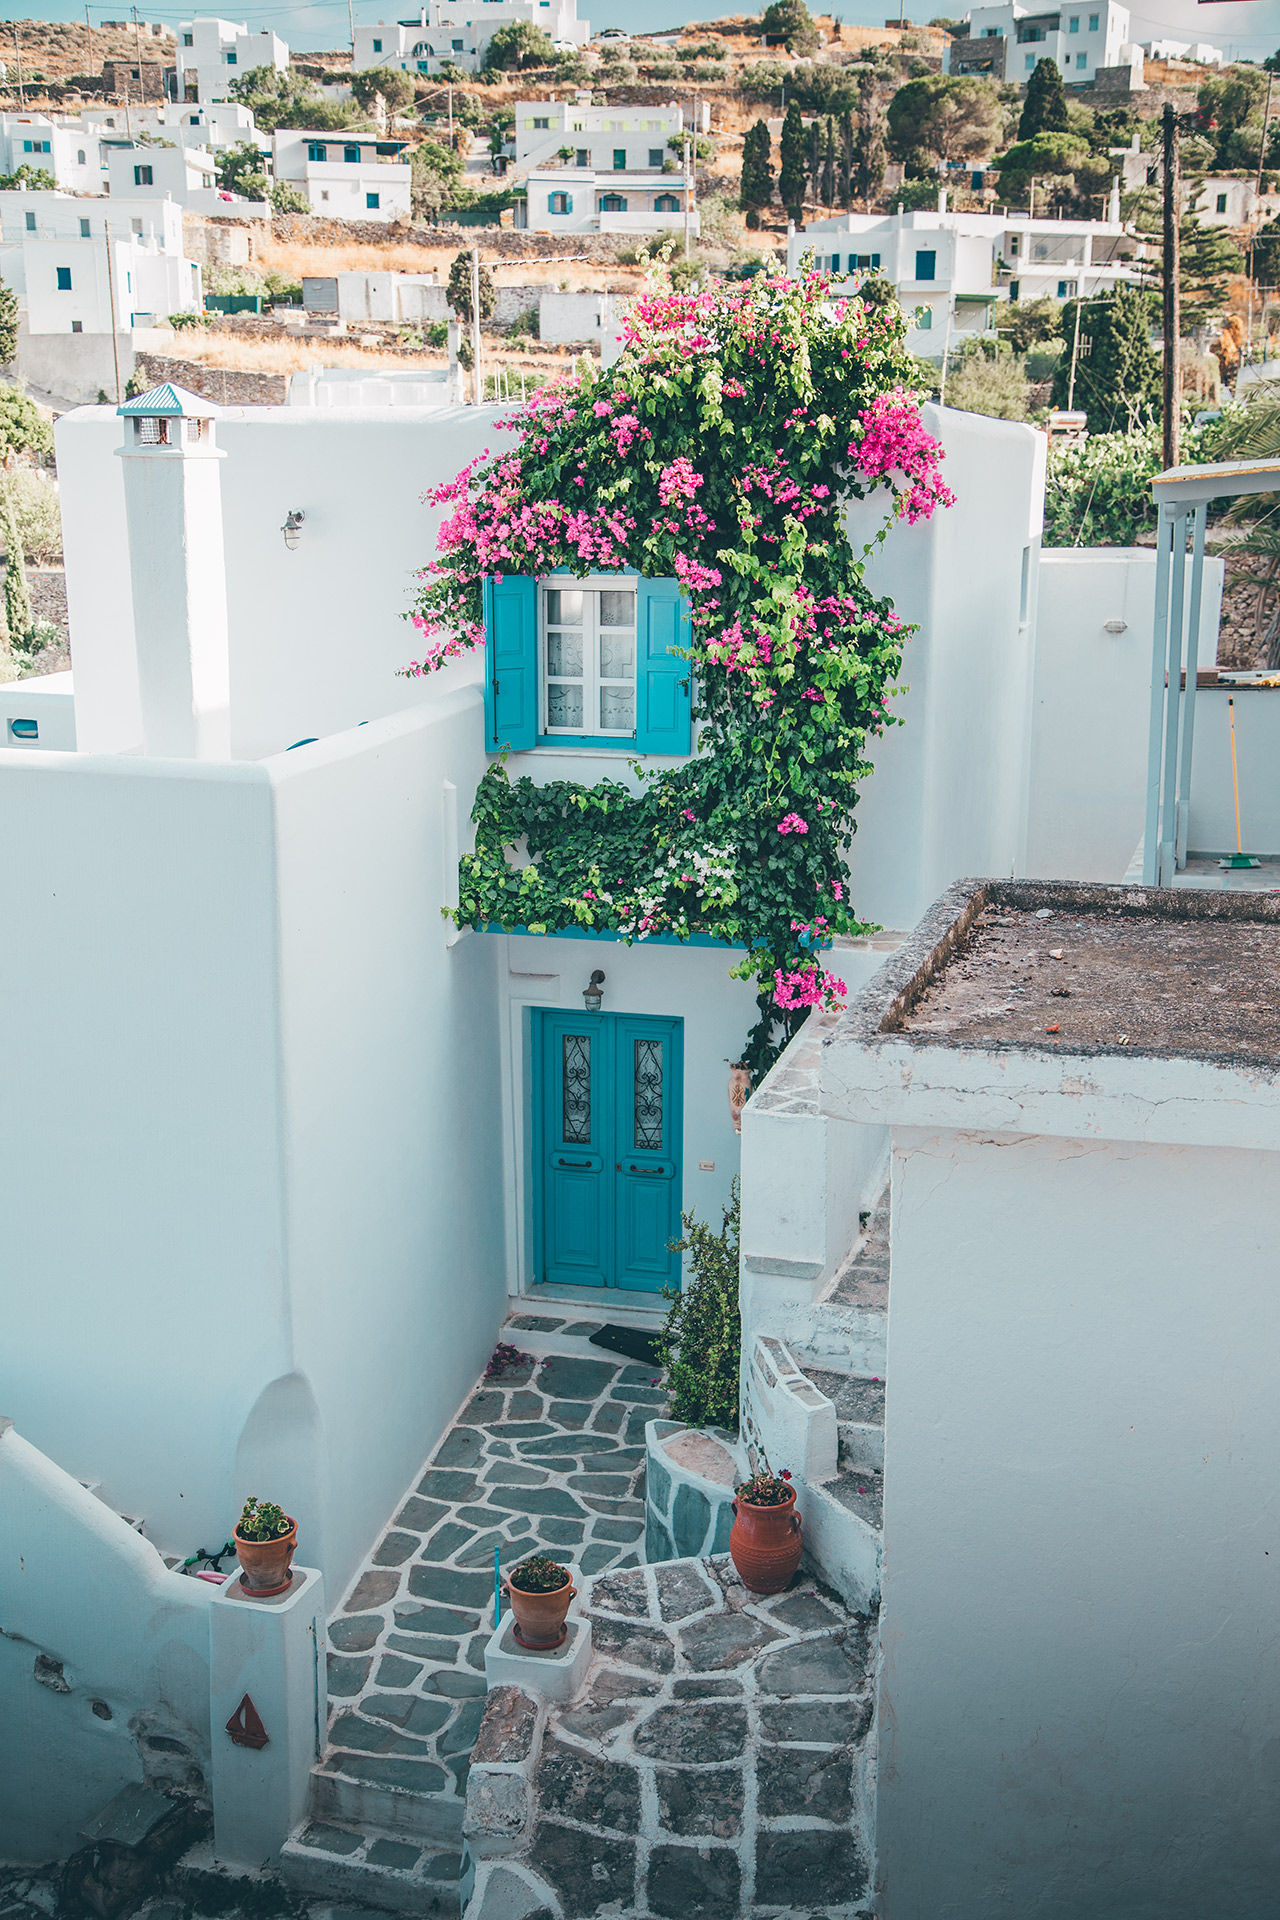 In Lefkes vilage you will find whitewashed houses, blue doors, bougainvillea and windmills